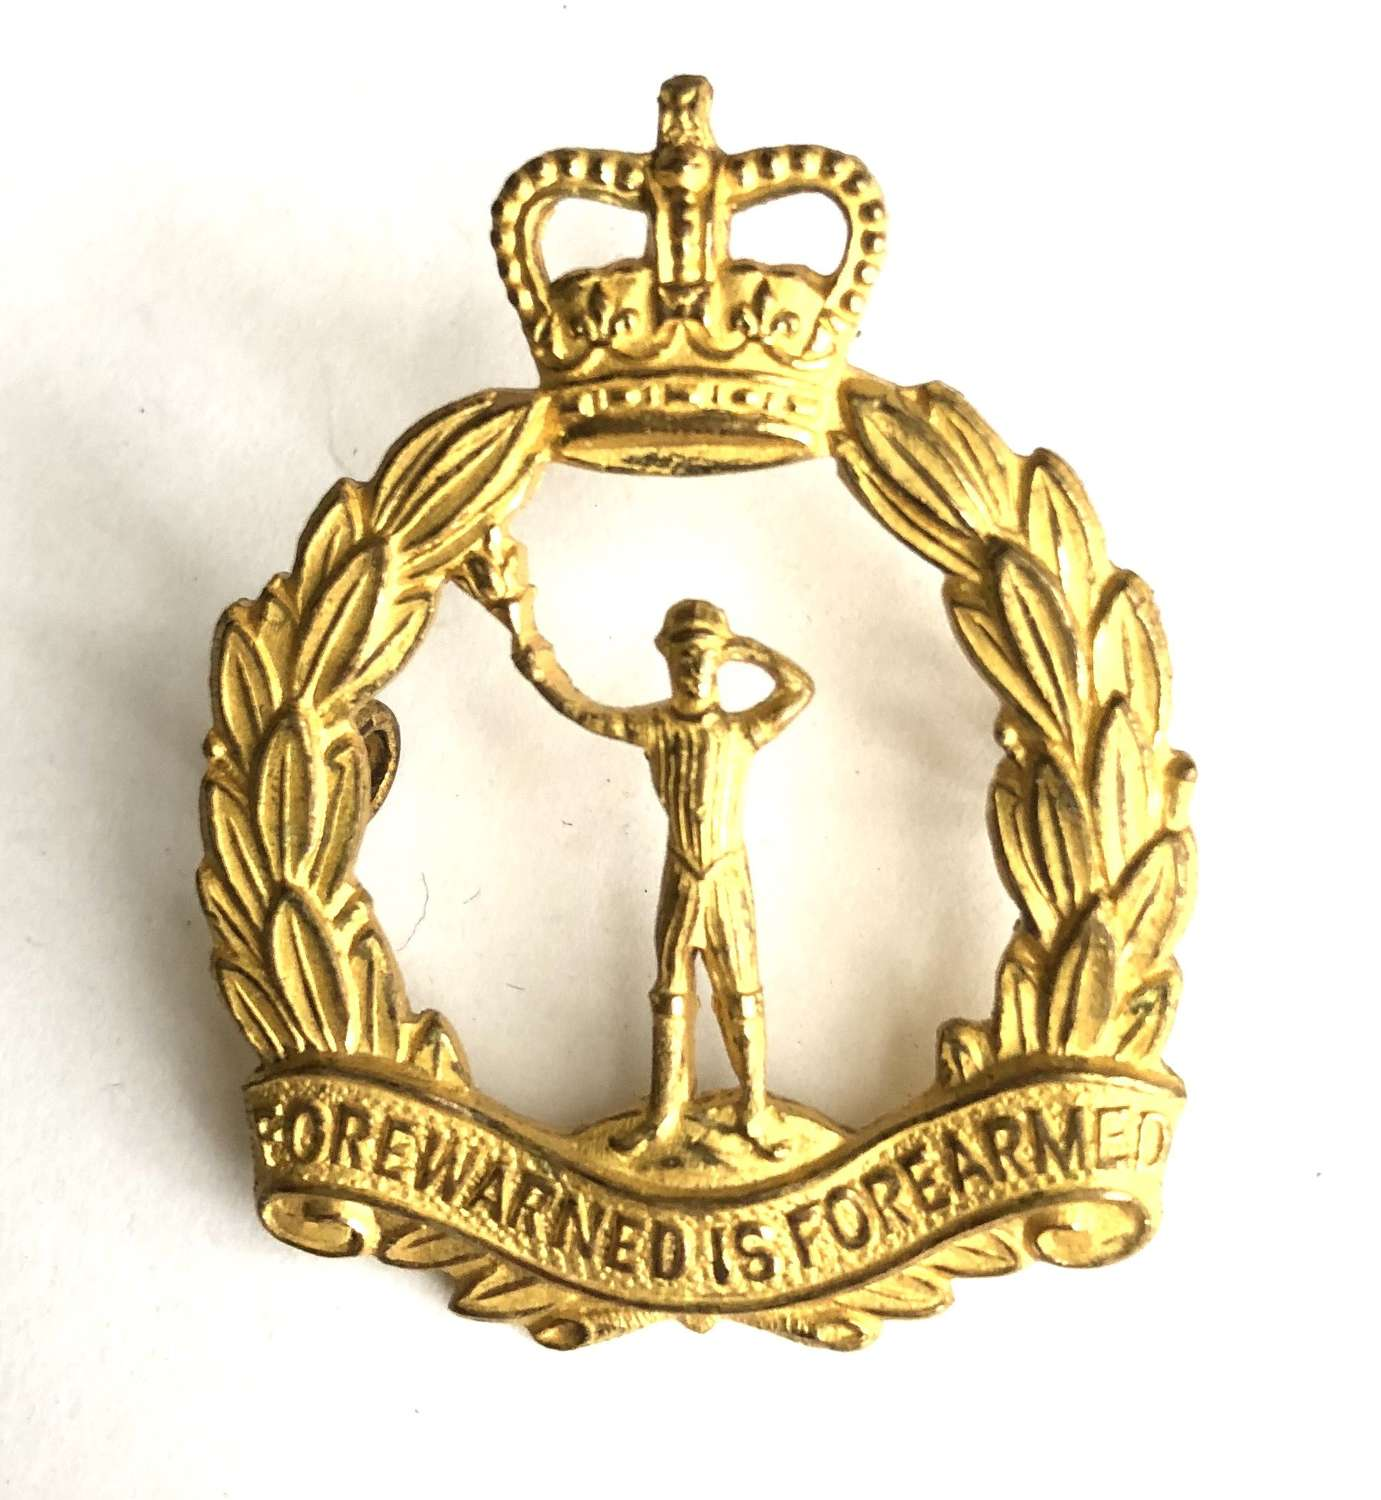 Royal Observer Corps Officer's beret badge circa 1953-96